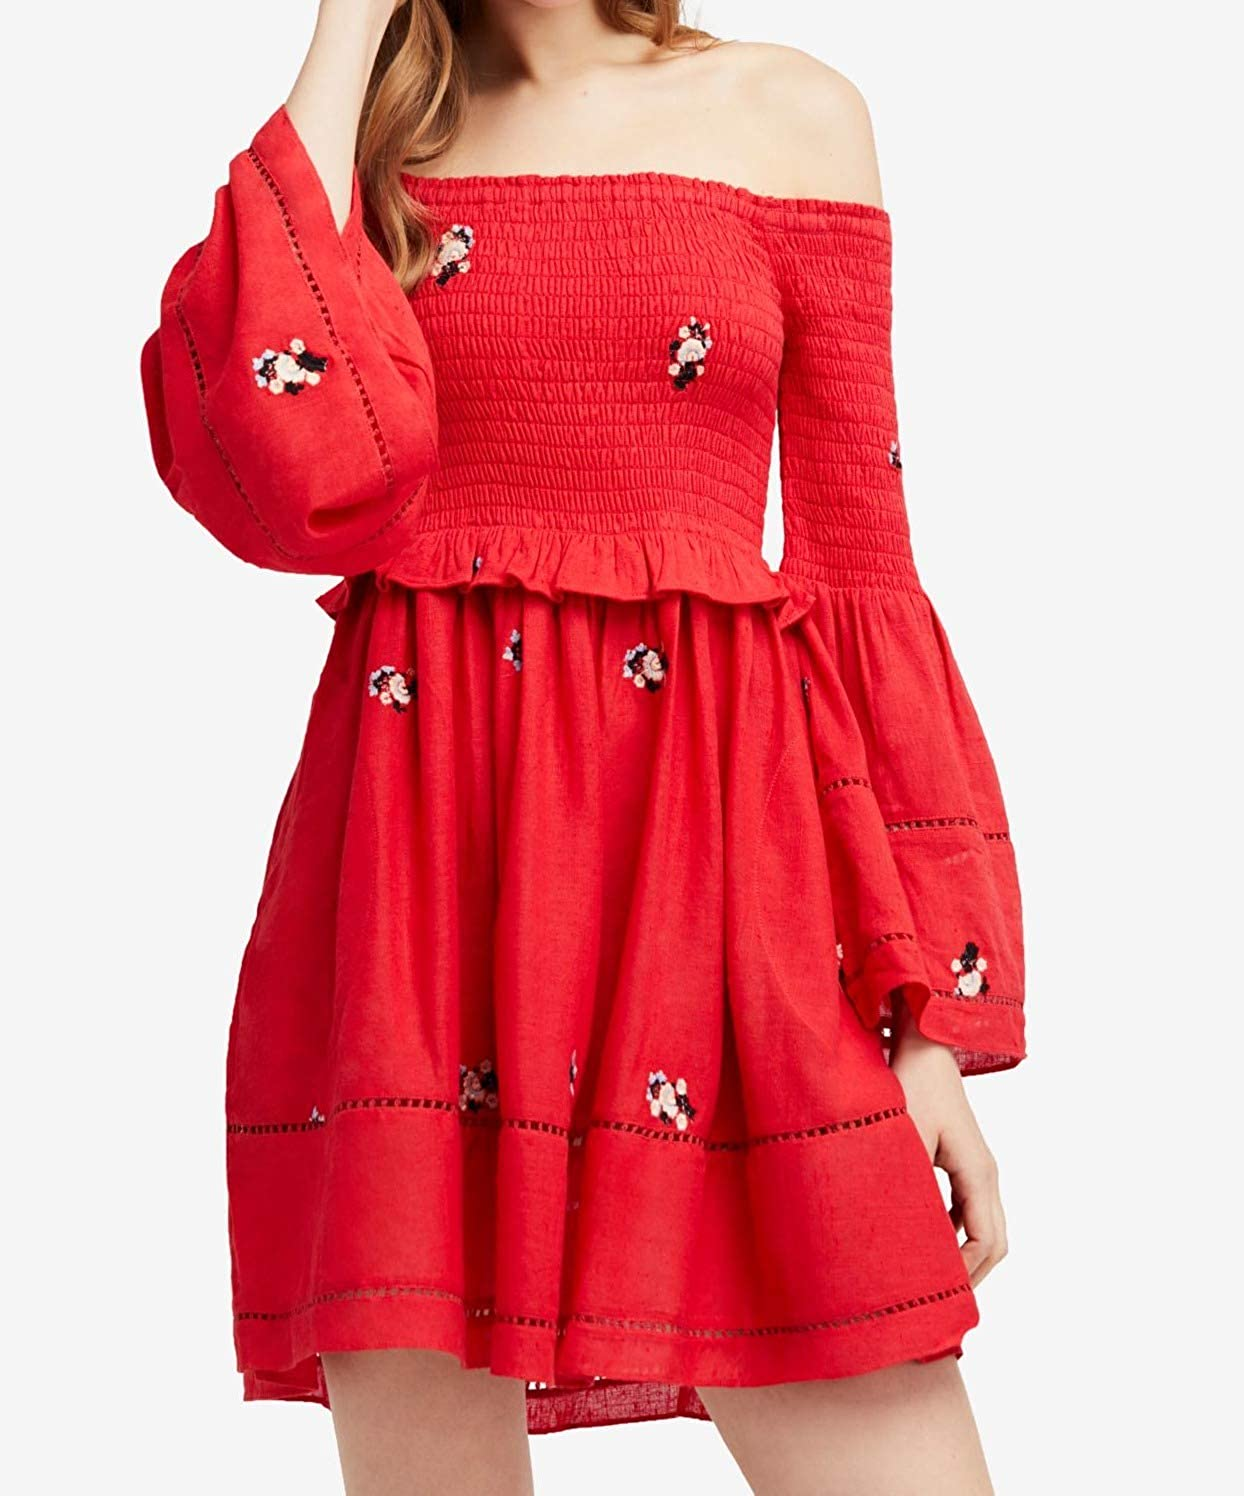 548ce80fff517 Free People Women's Counting Daisies Embroidered Off-The-Shoulder Dress at  Amazon Women's Clothing store: